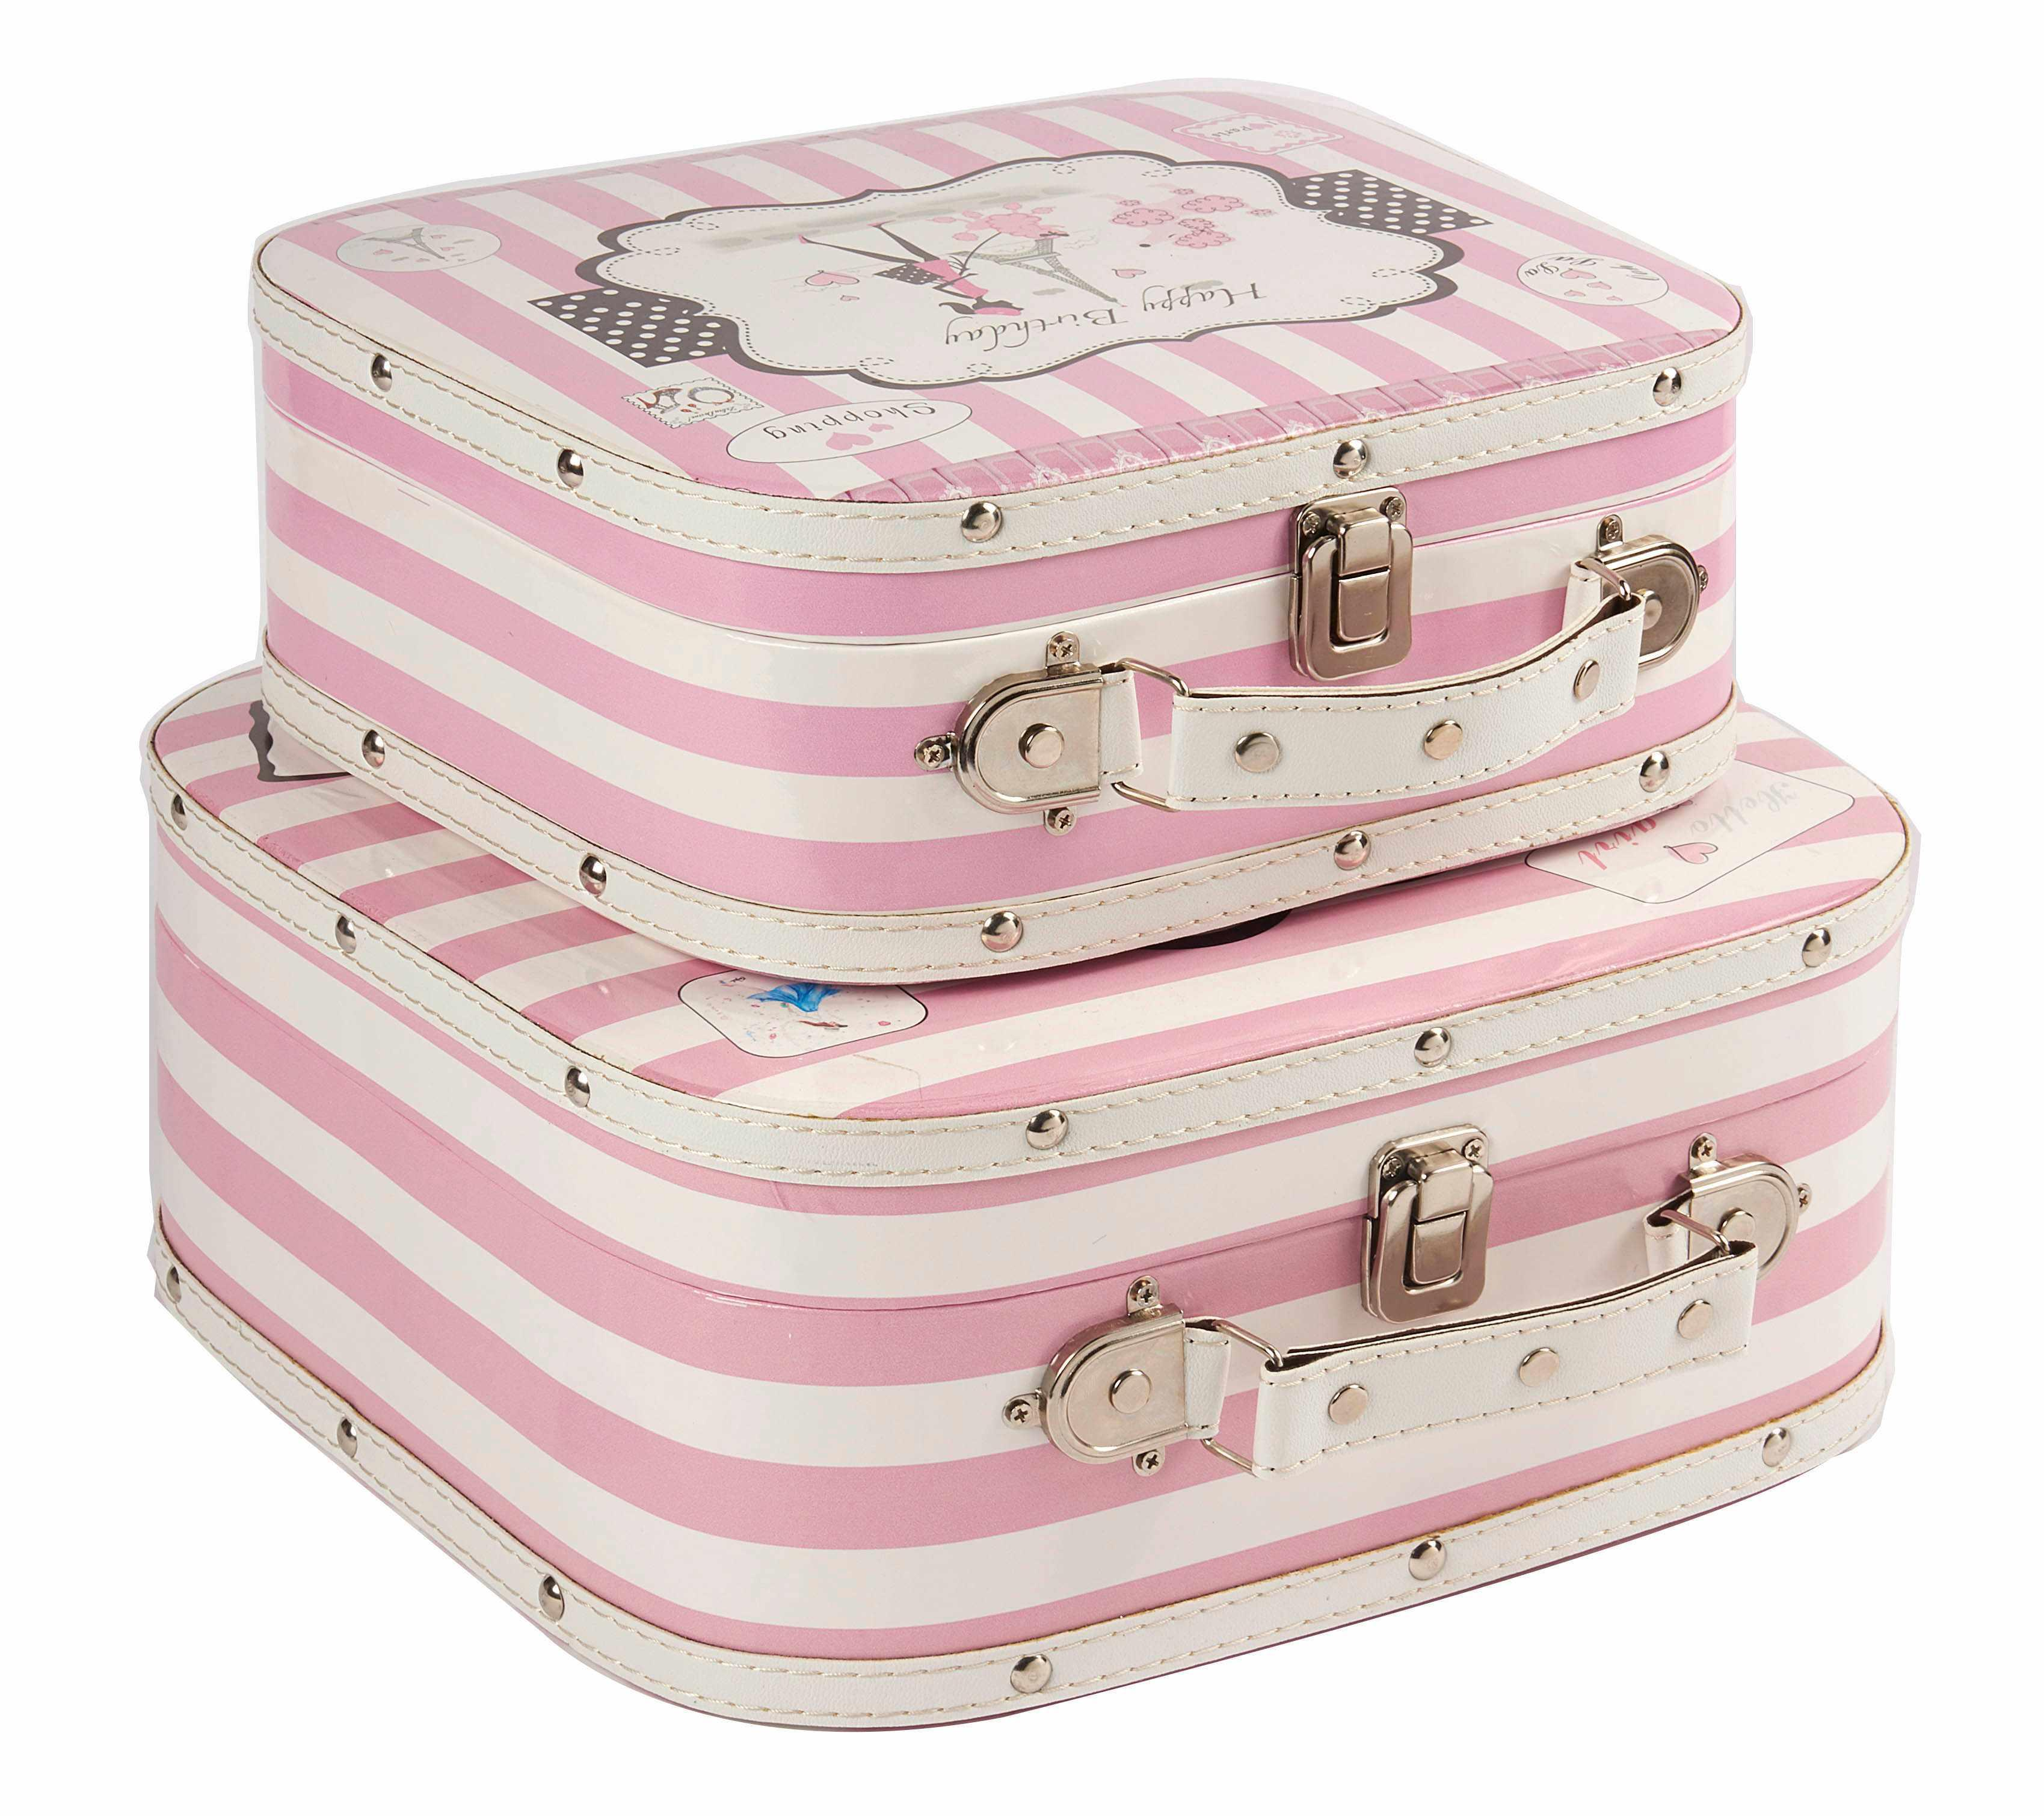 Kingdeful antique suitcase with good price for outdoor-2